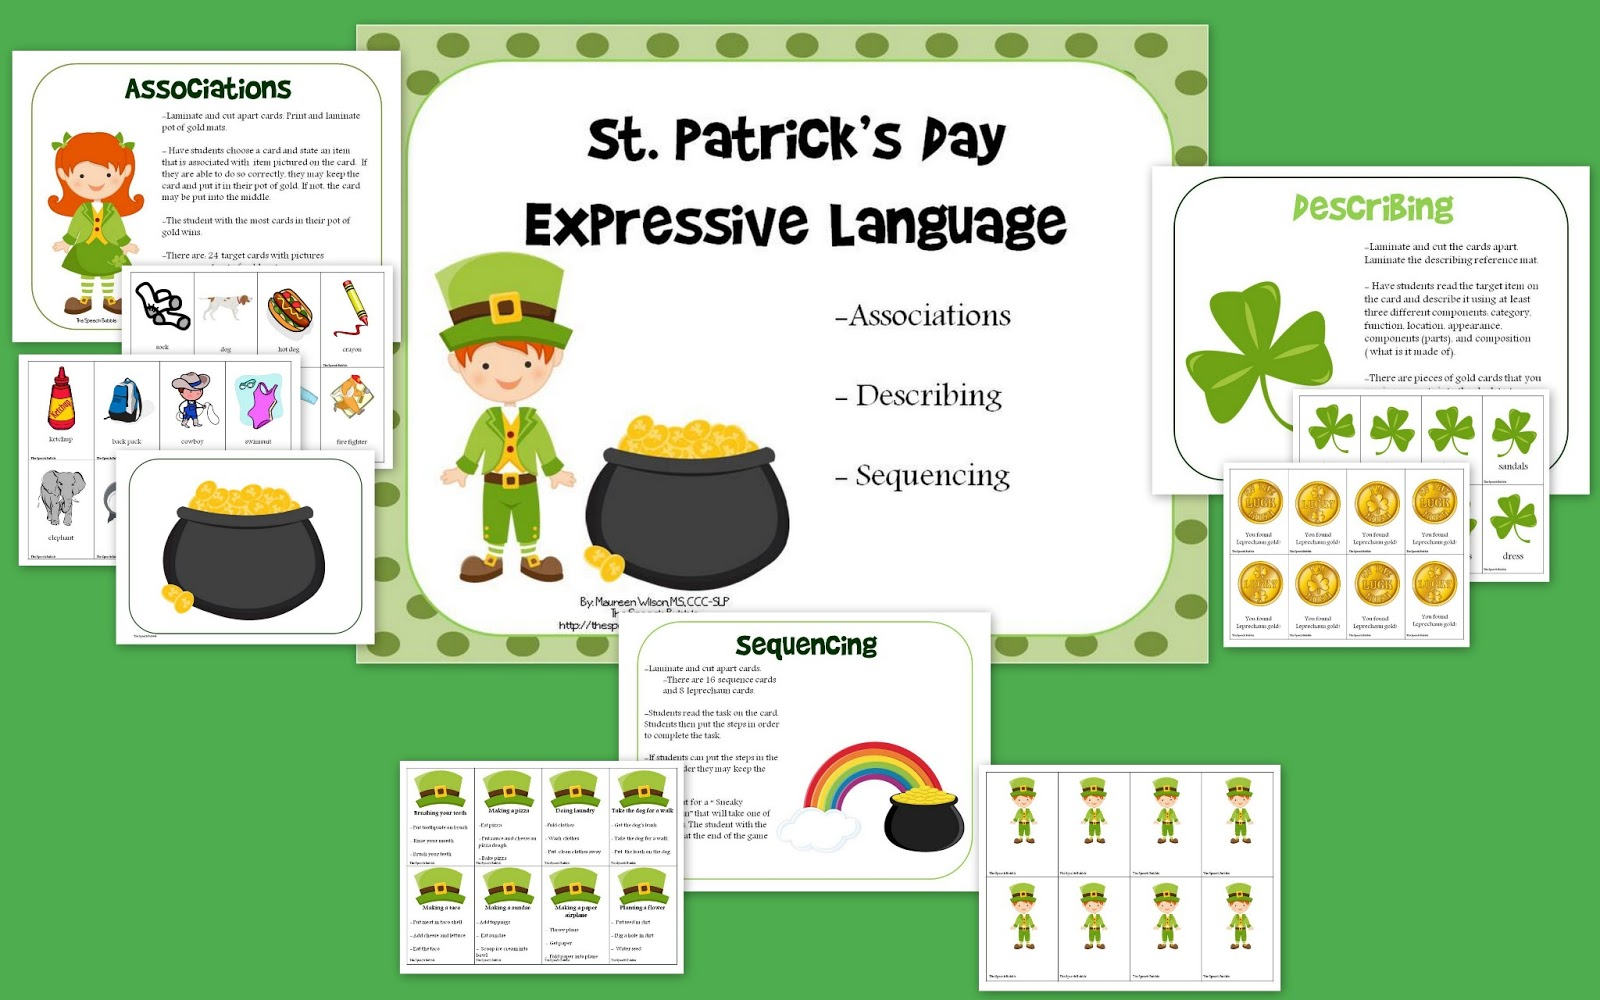 St. Patrick's Day Expressive Language Giveaway (Part I)